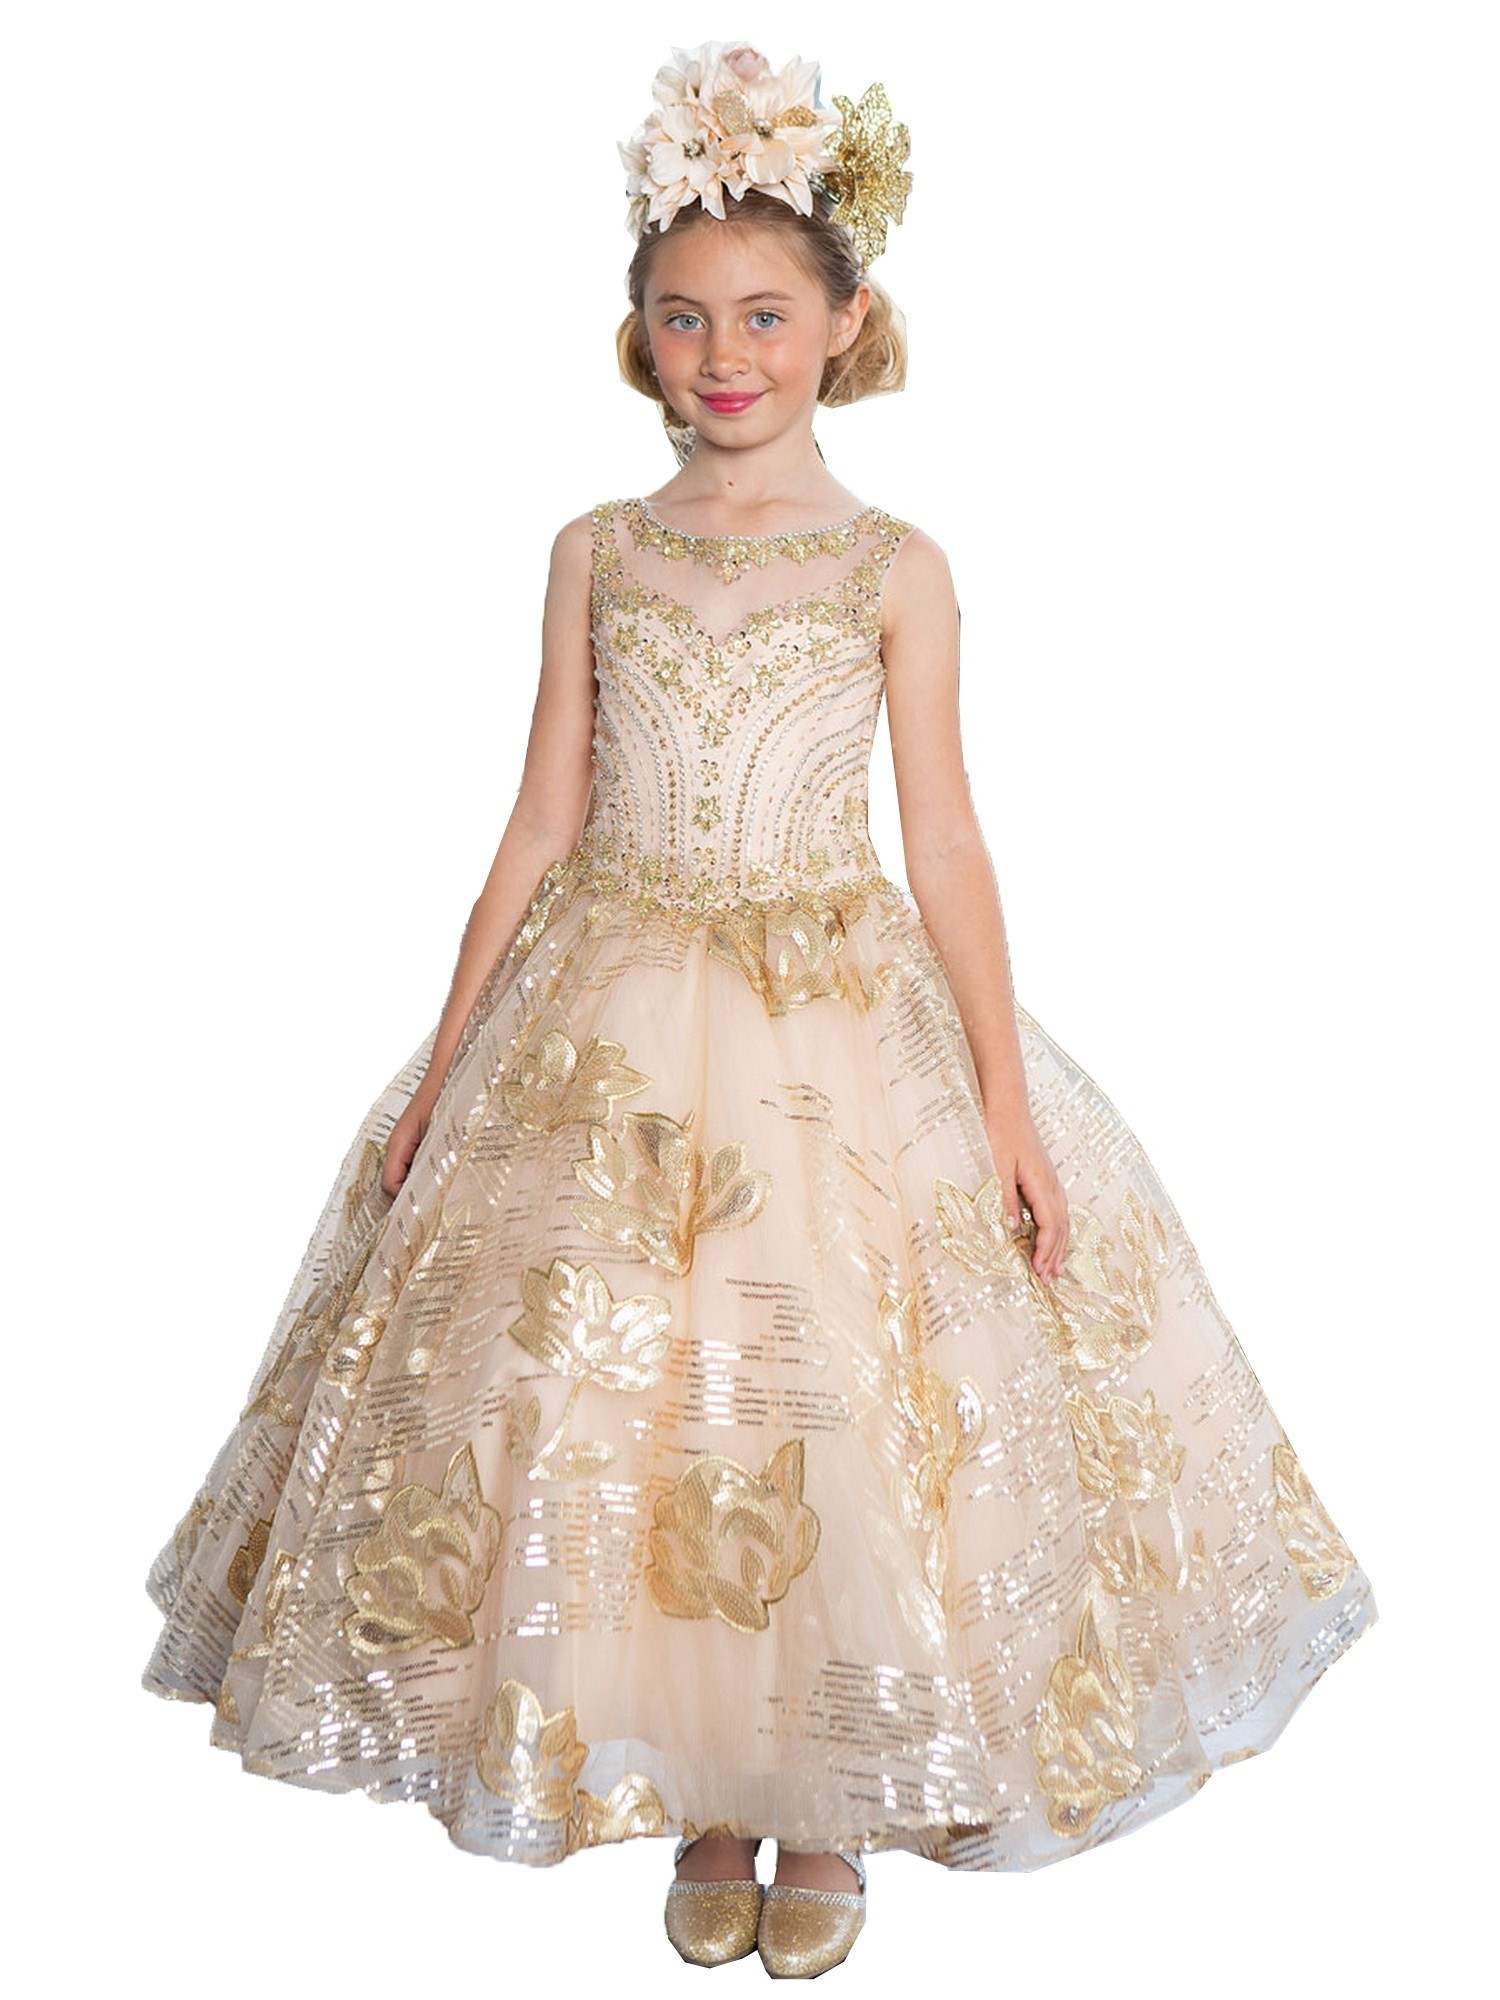 bec0c58f34 Calla Collection Little Girls Gold Sparkle Pageant Flower Girl Dress 3-6